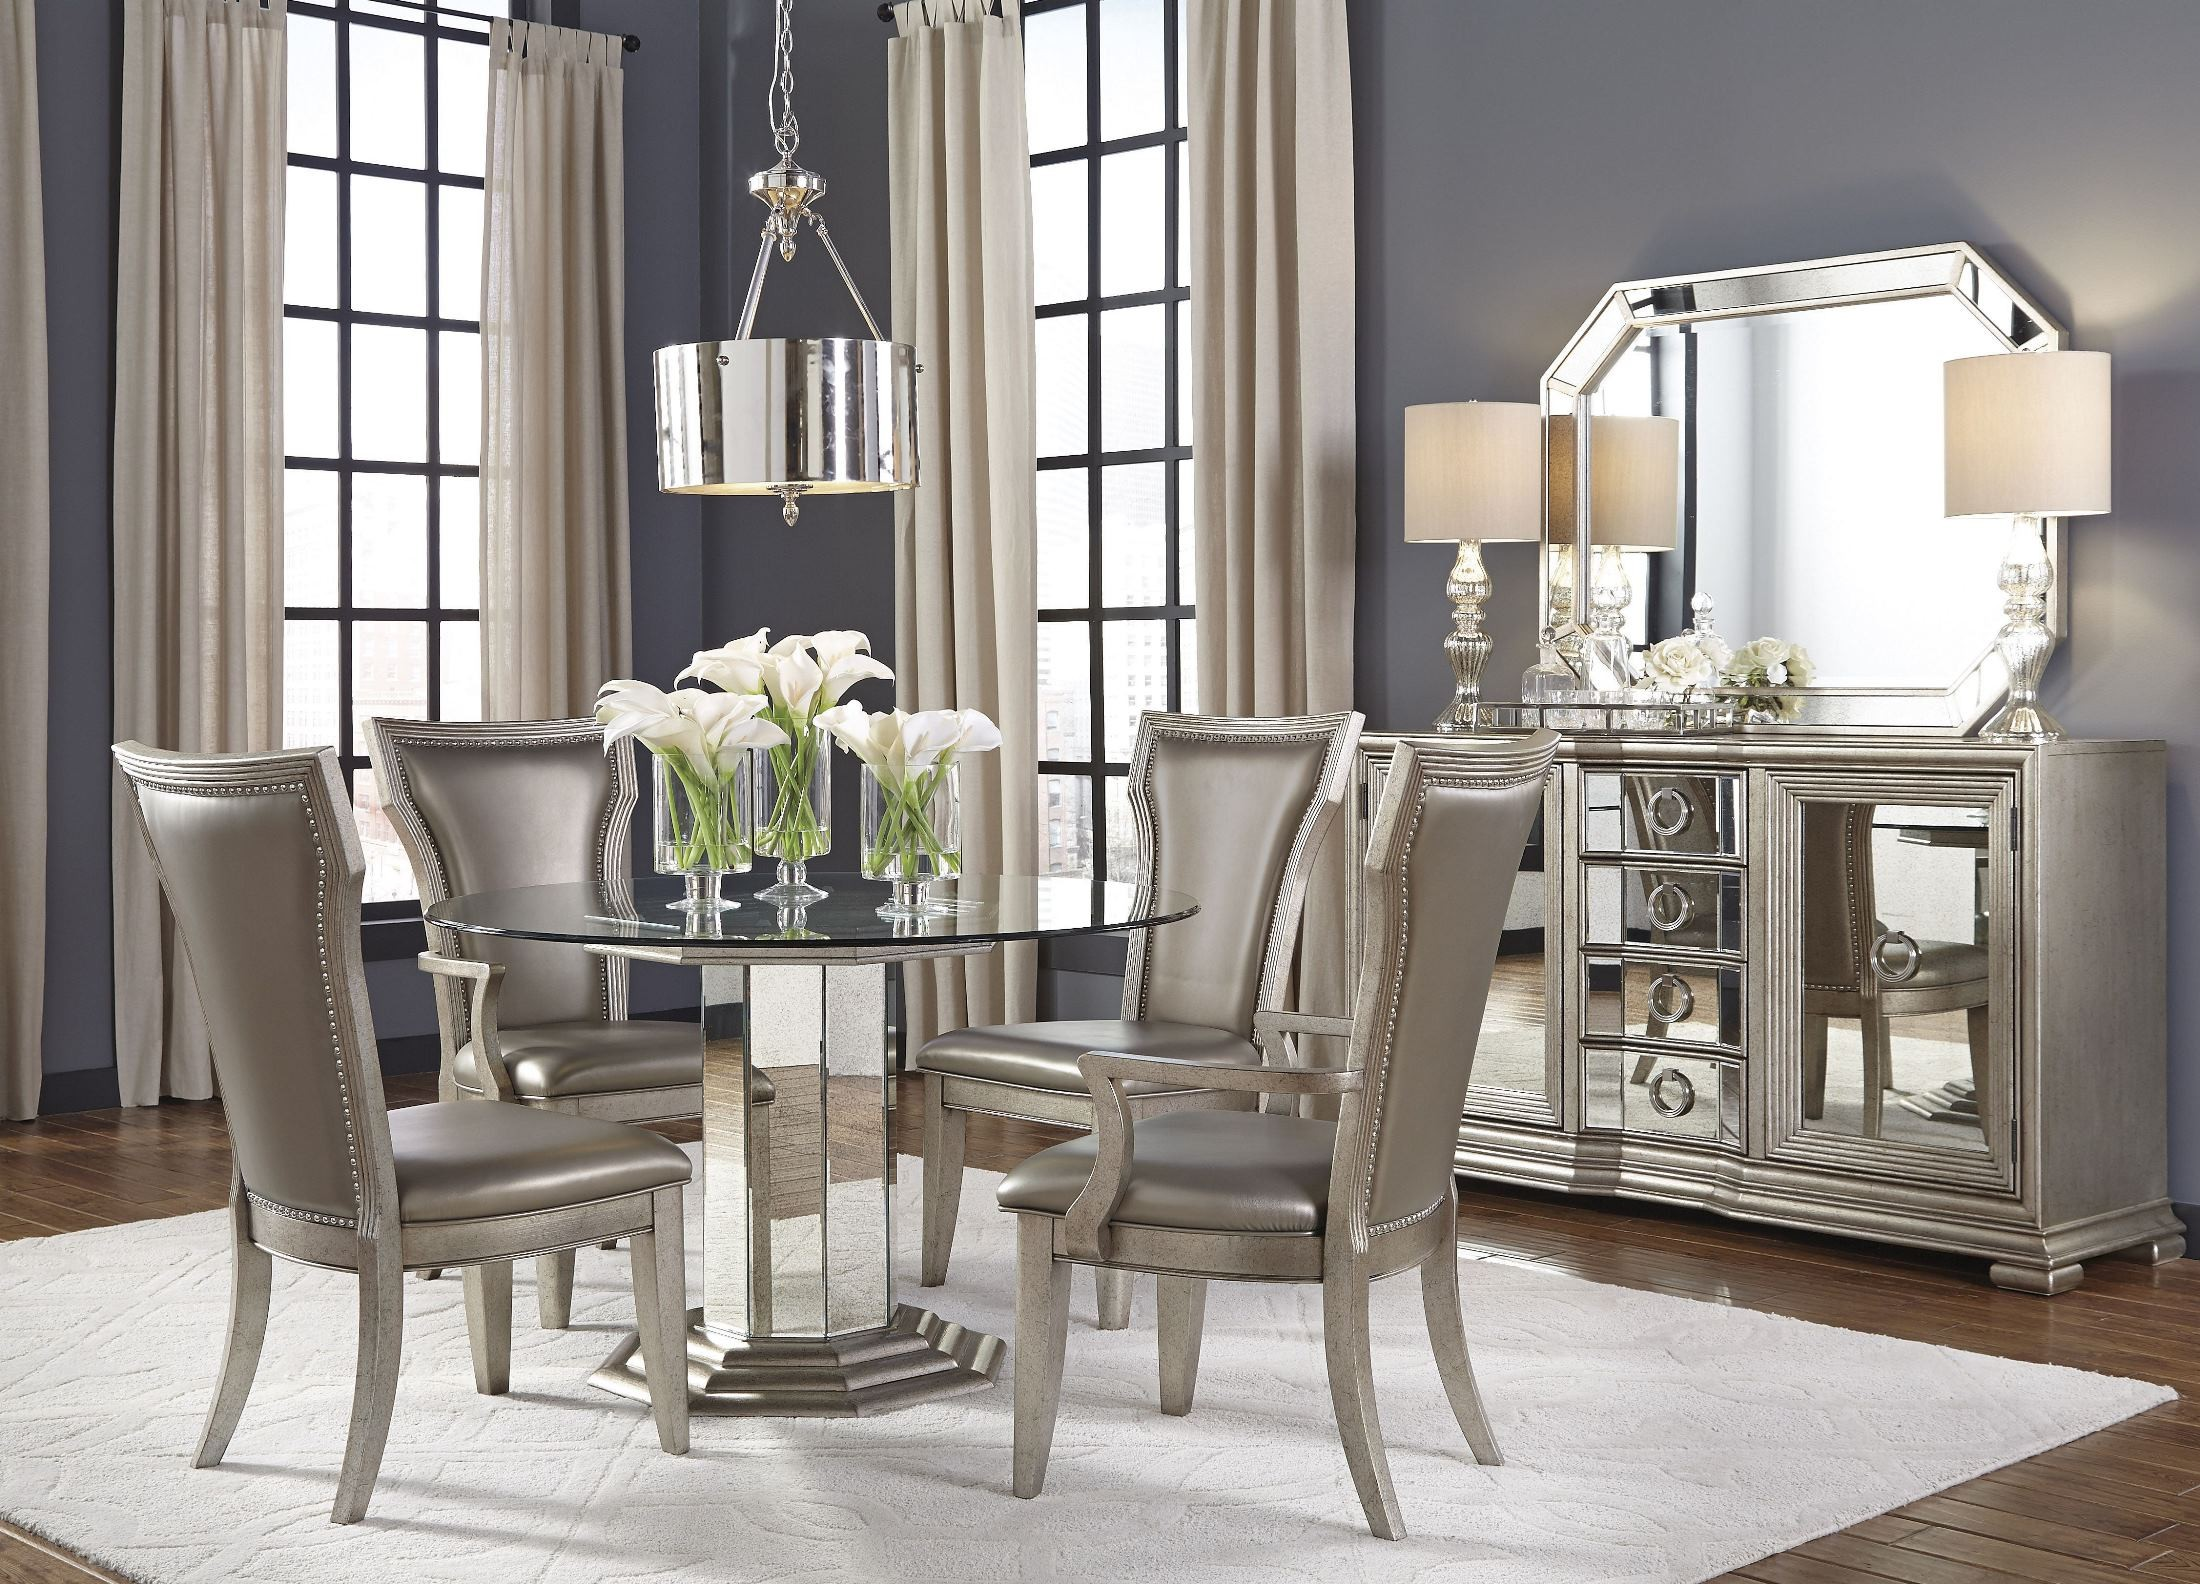 Gray Dining Room Round Table Setup